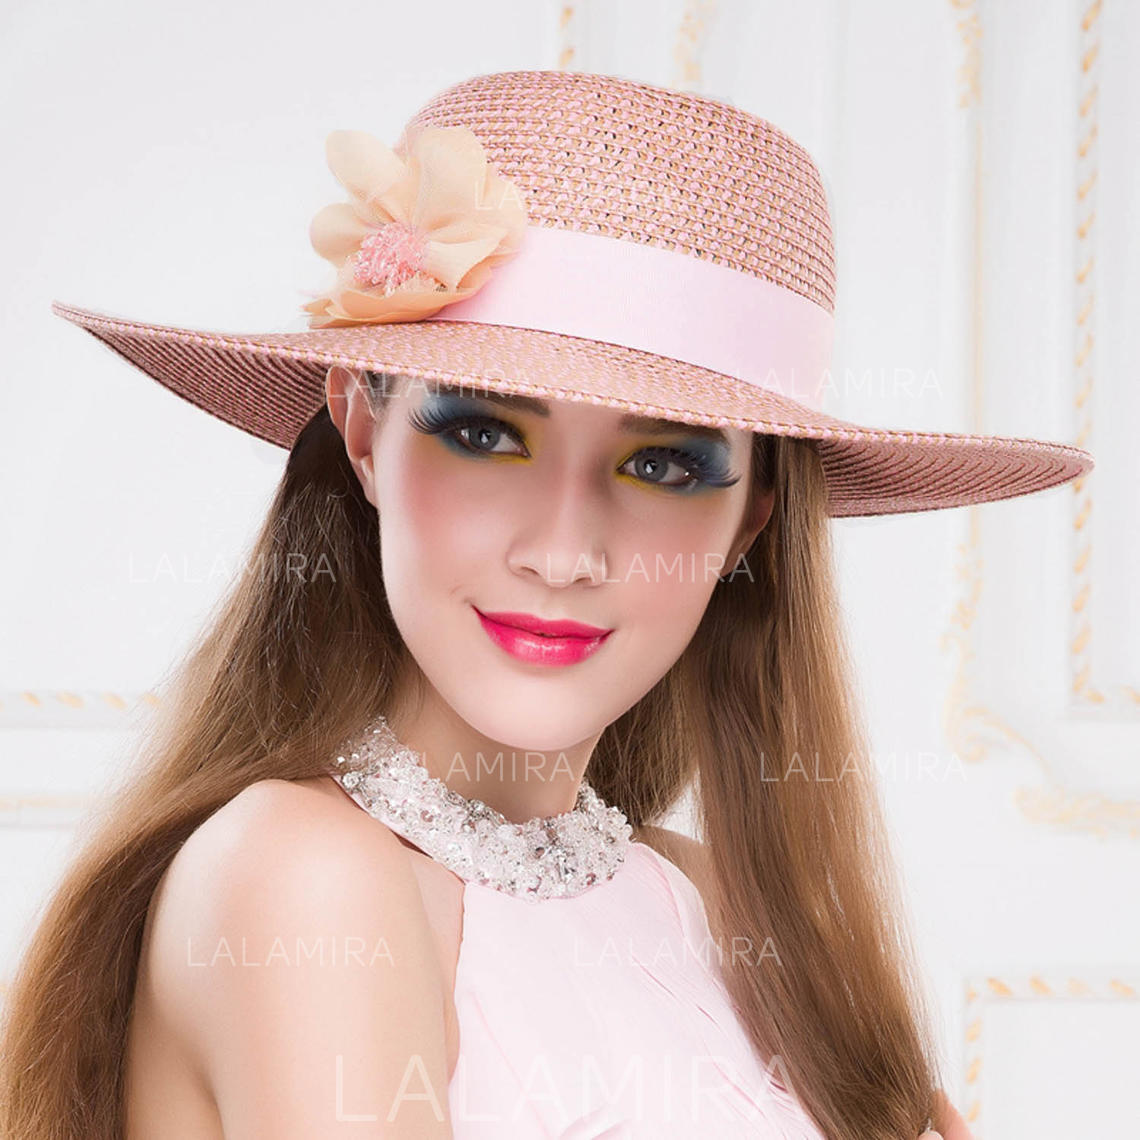 855026a96 Papyrus With Silk Flower Floppy Hat/Straw Hat Charming Ladies' Hats  (196193871)